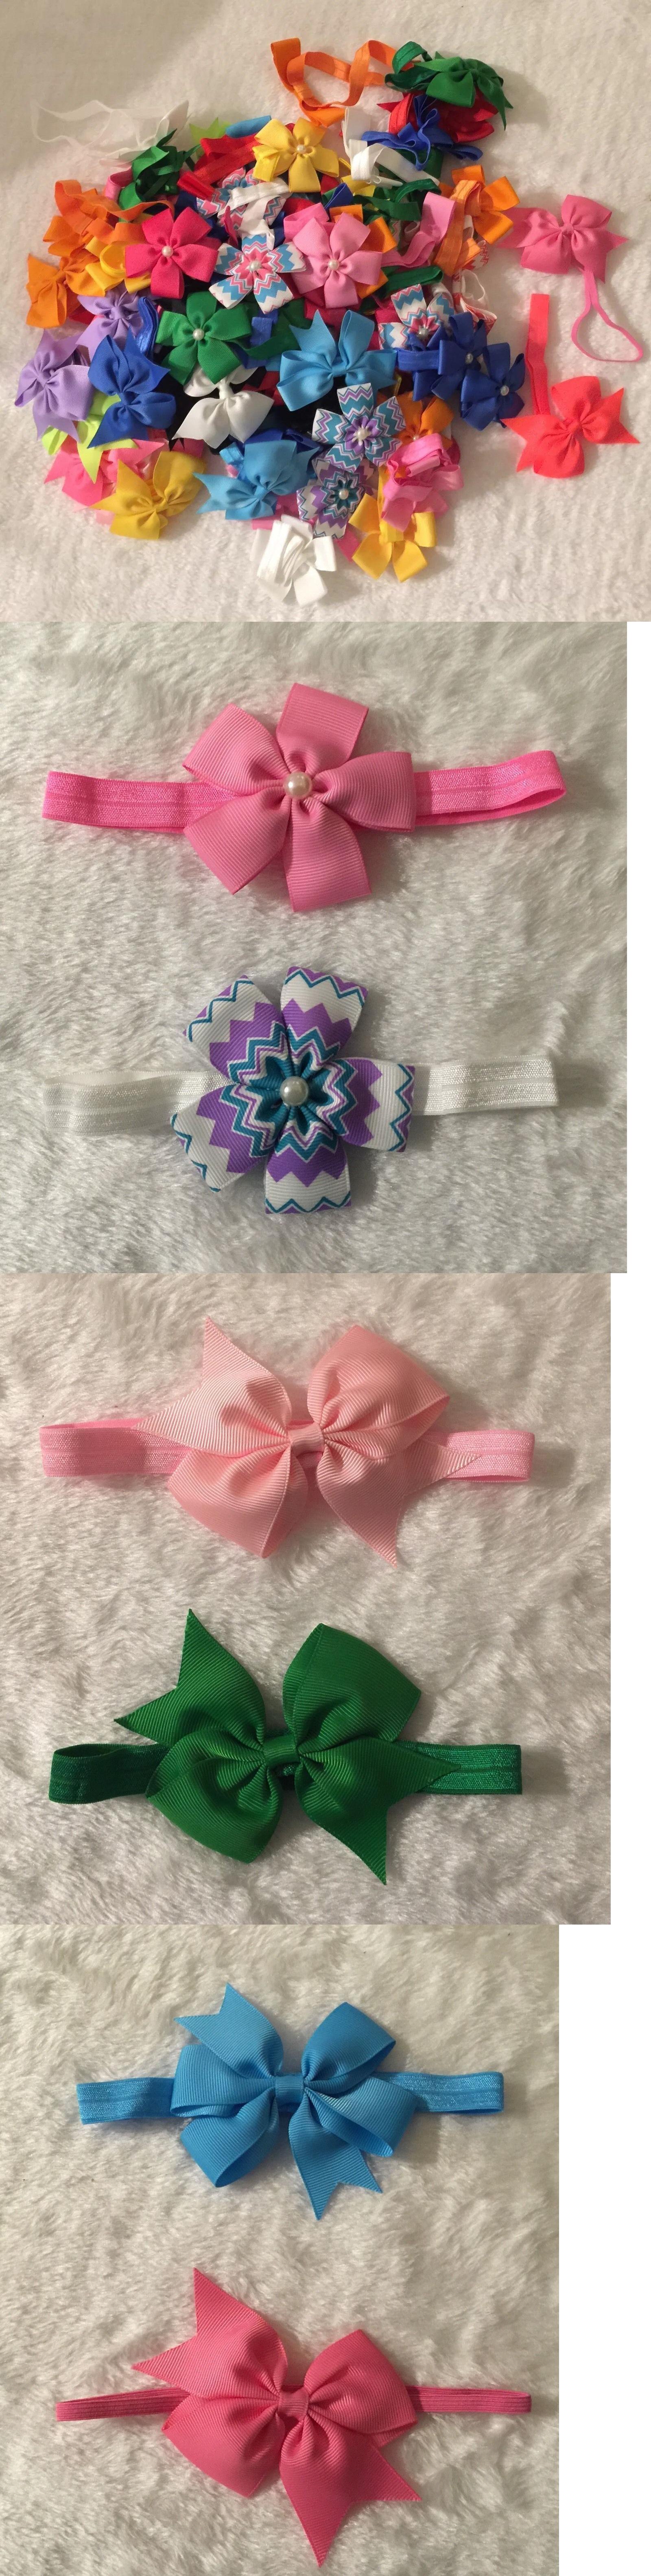 Hair accessories for babies ebay - Hair Accessories 18786 90 Pcs Grab Bag Headband Baby Infant Toddler Girls Hair Bow Headwear